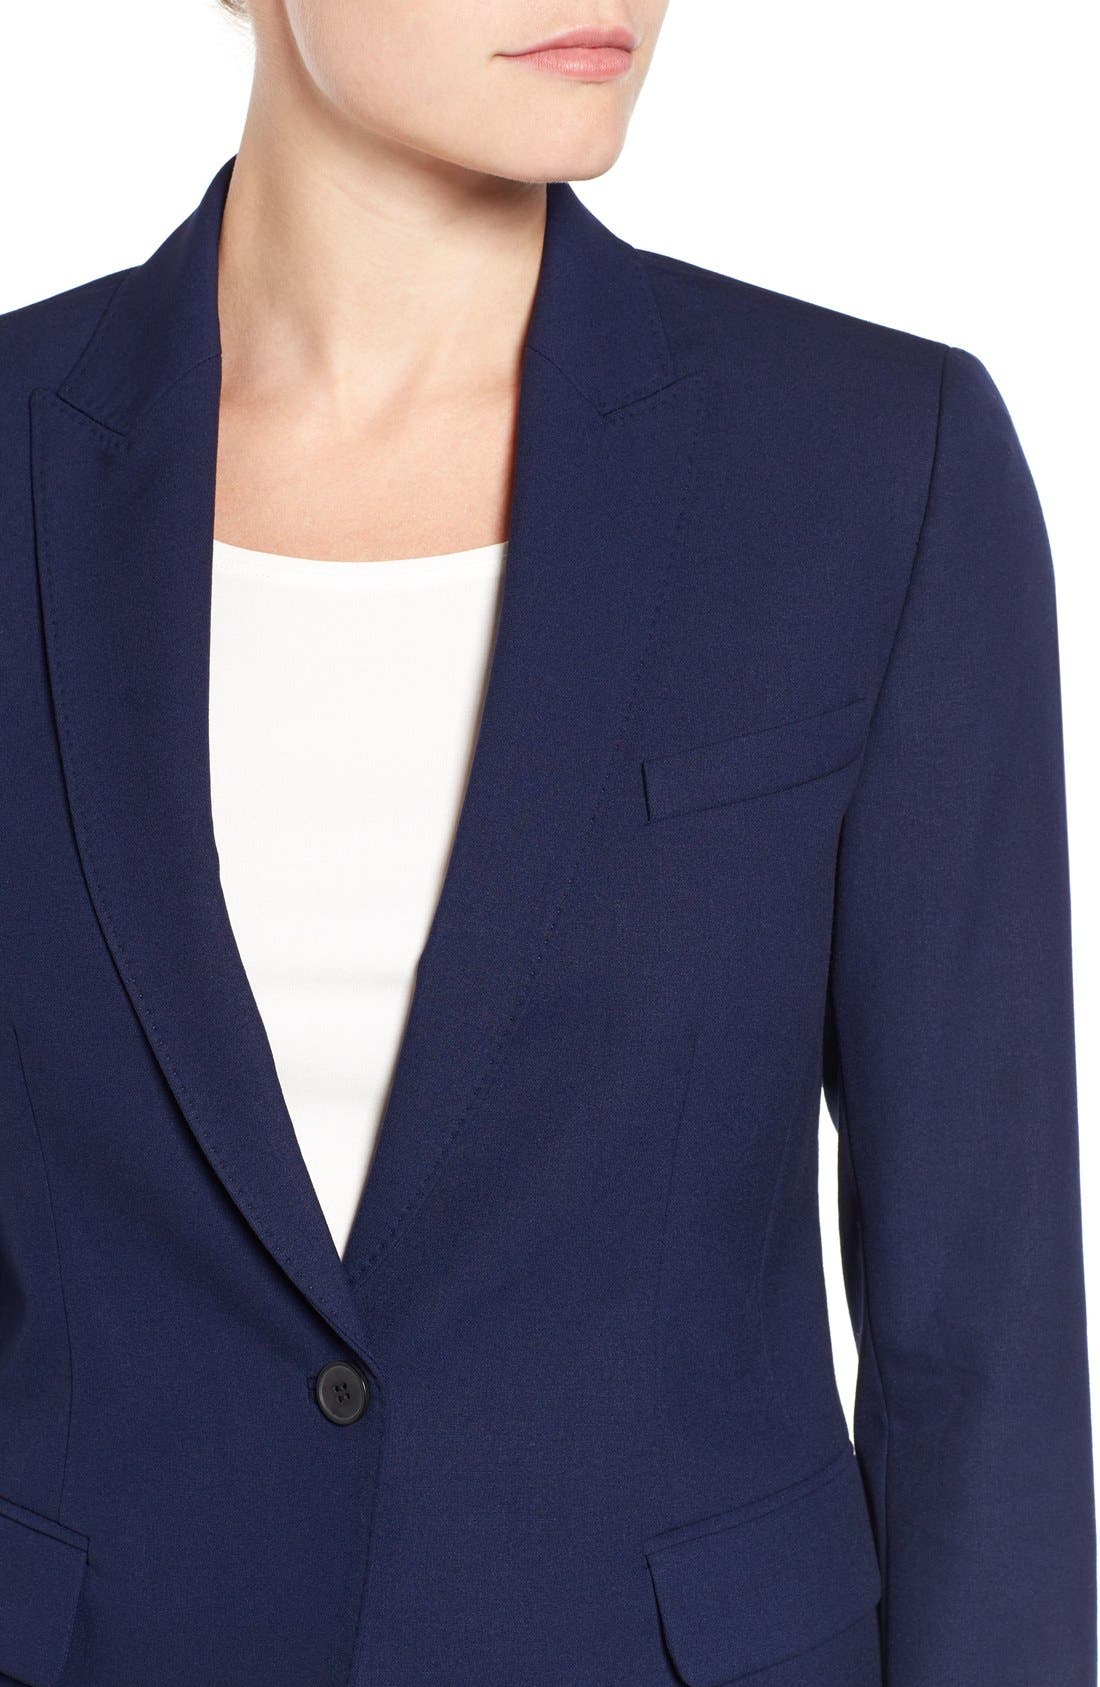 One-Button Suit Jacket,                             Alternate thumbnail 6, color,                             NAVY